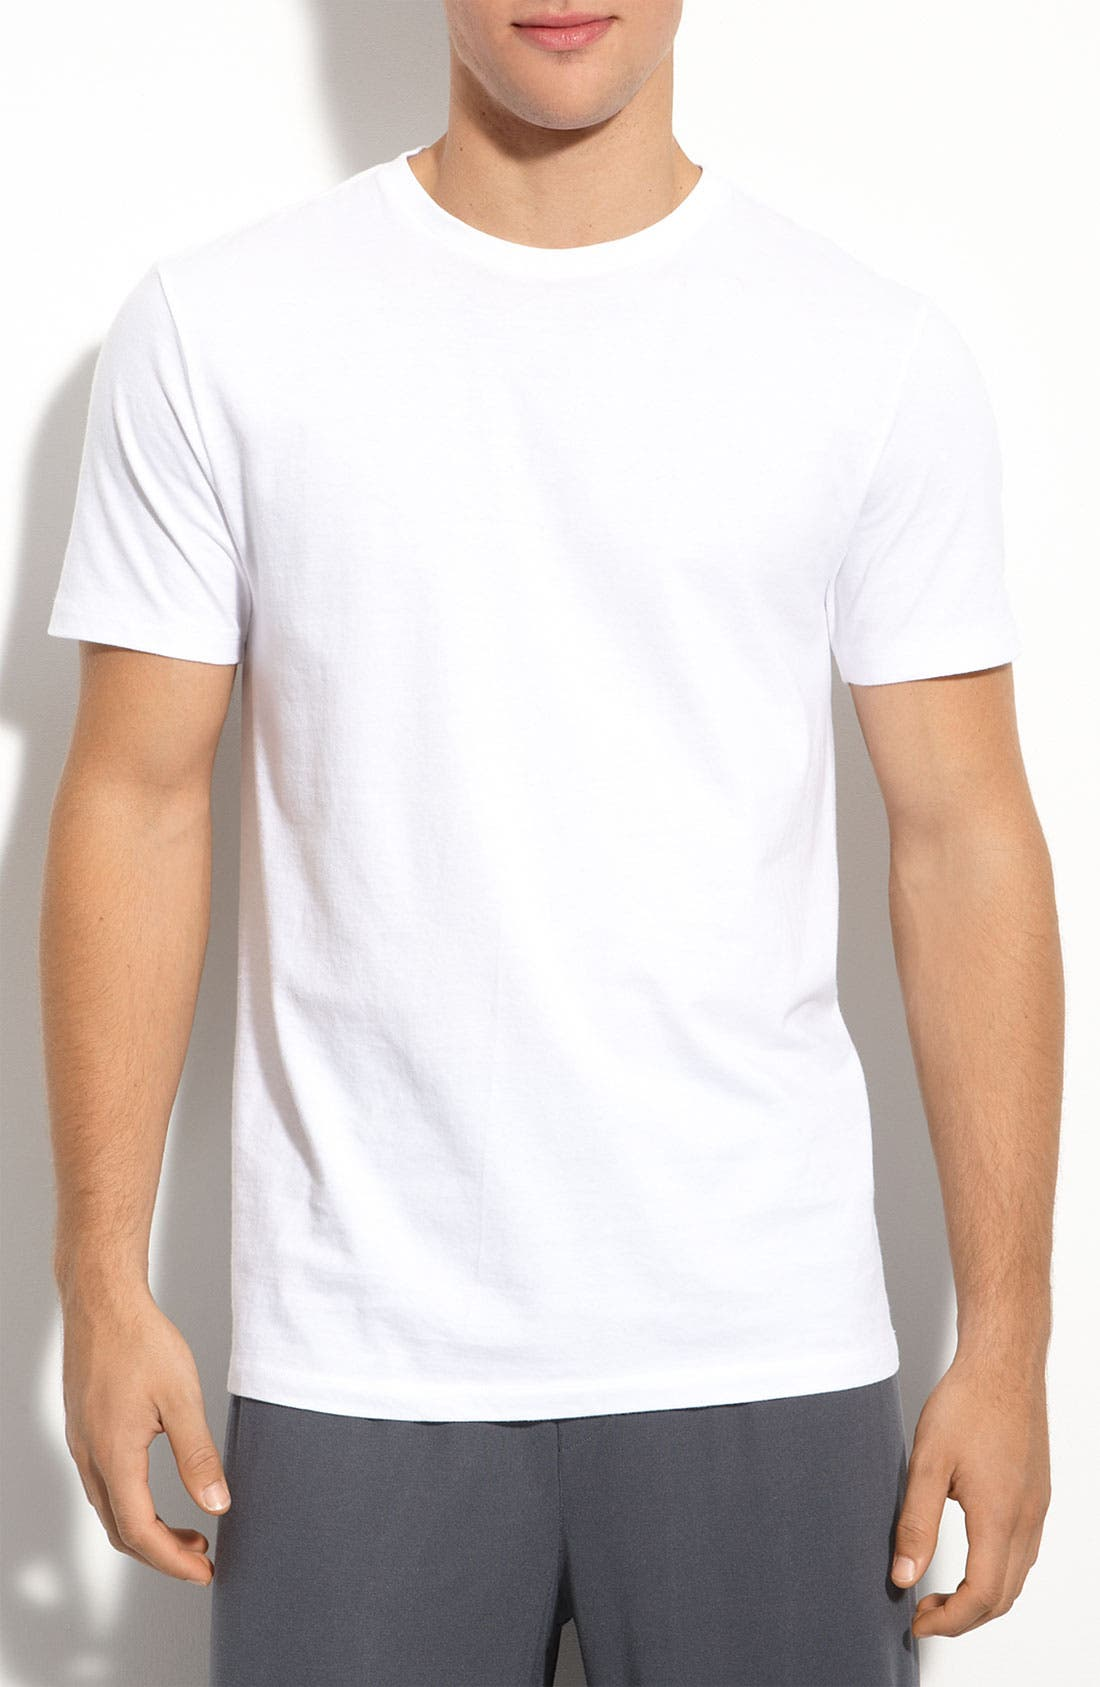 Alternate Image 1 Selected - Michael Kors Crewneck Shirt (3-Pack)